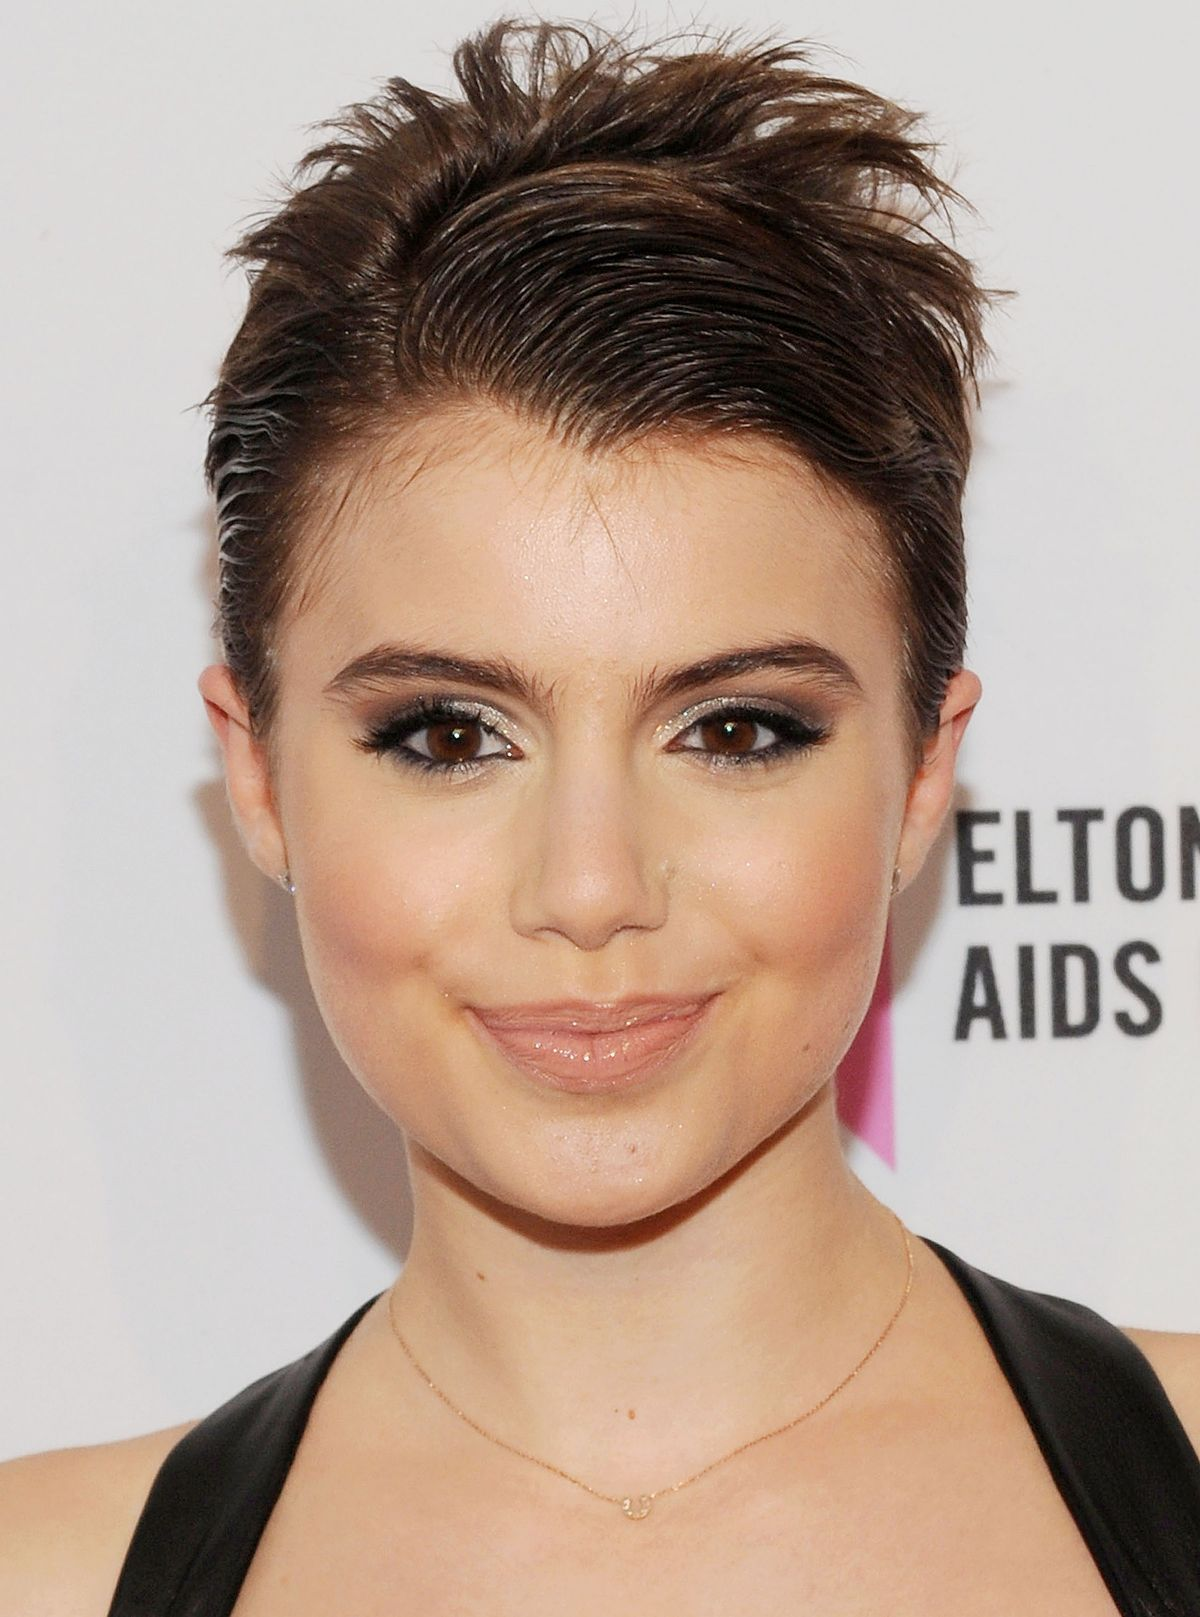 View And Try On This Sami Gayle Short Straight Formal Hairstyle   Medium  Brunette.